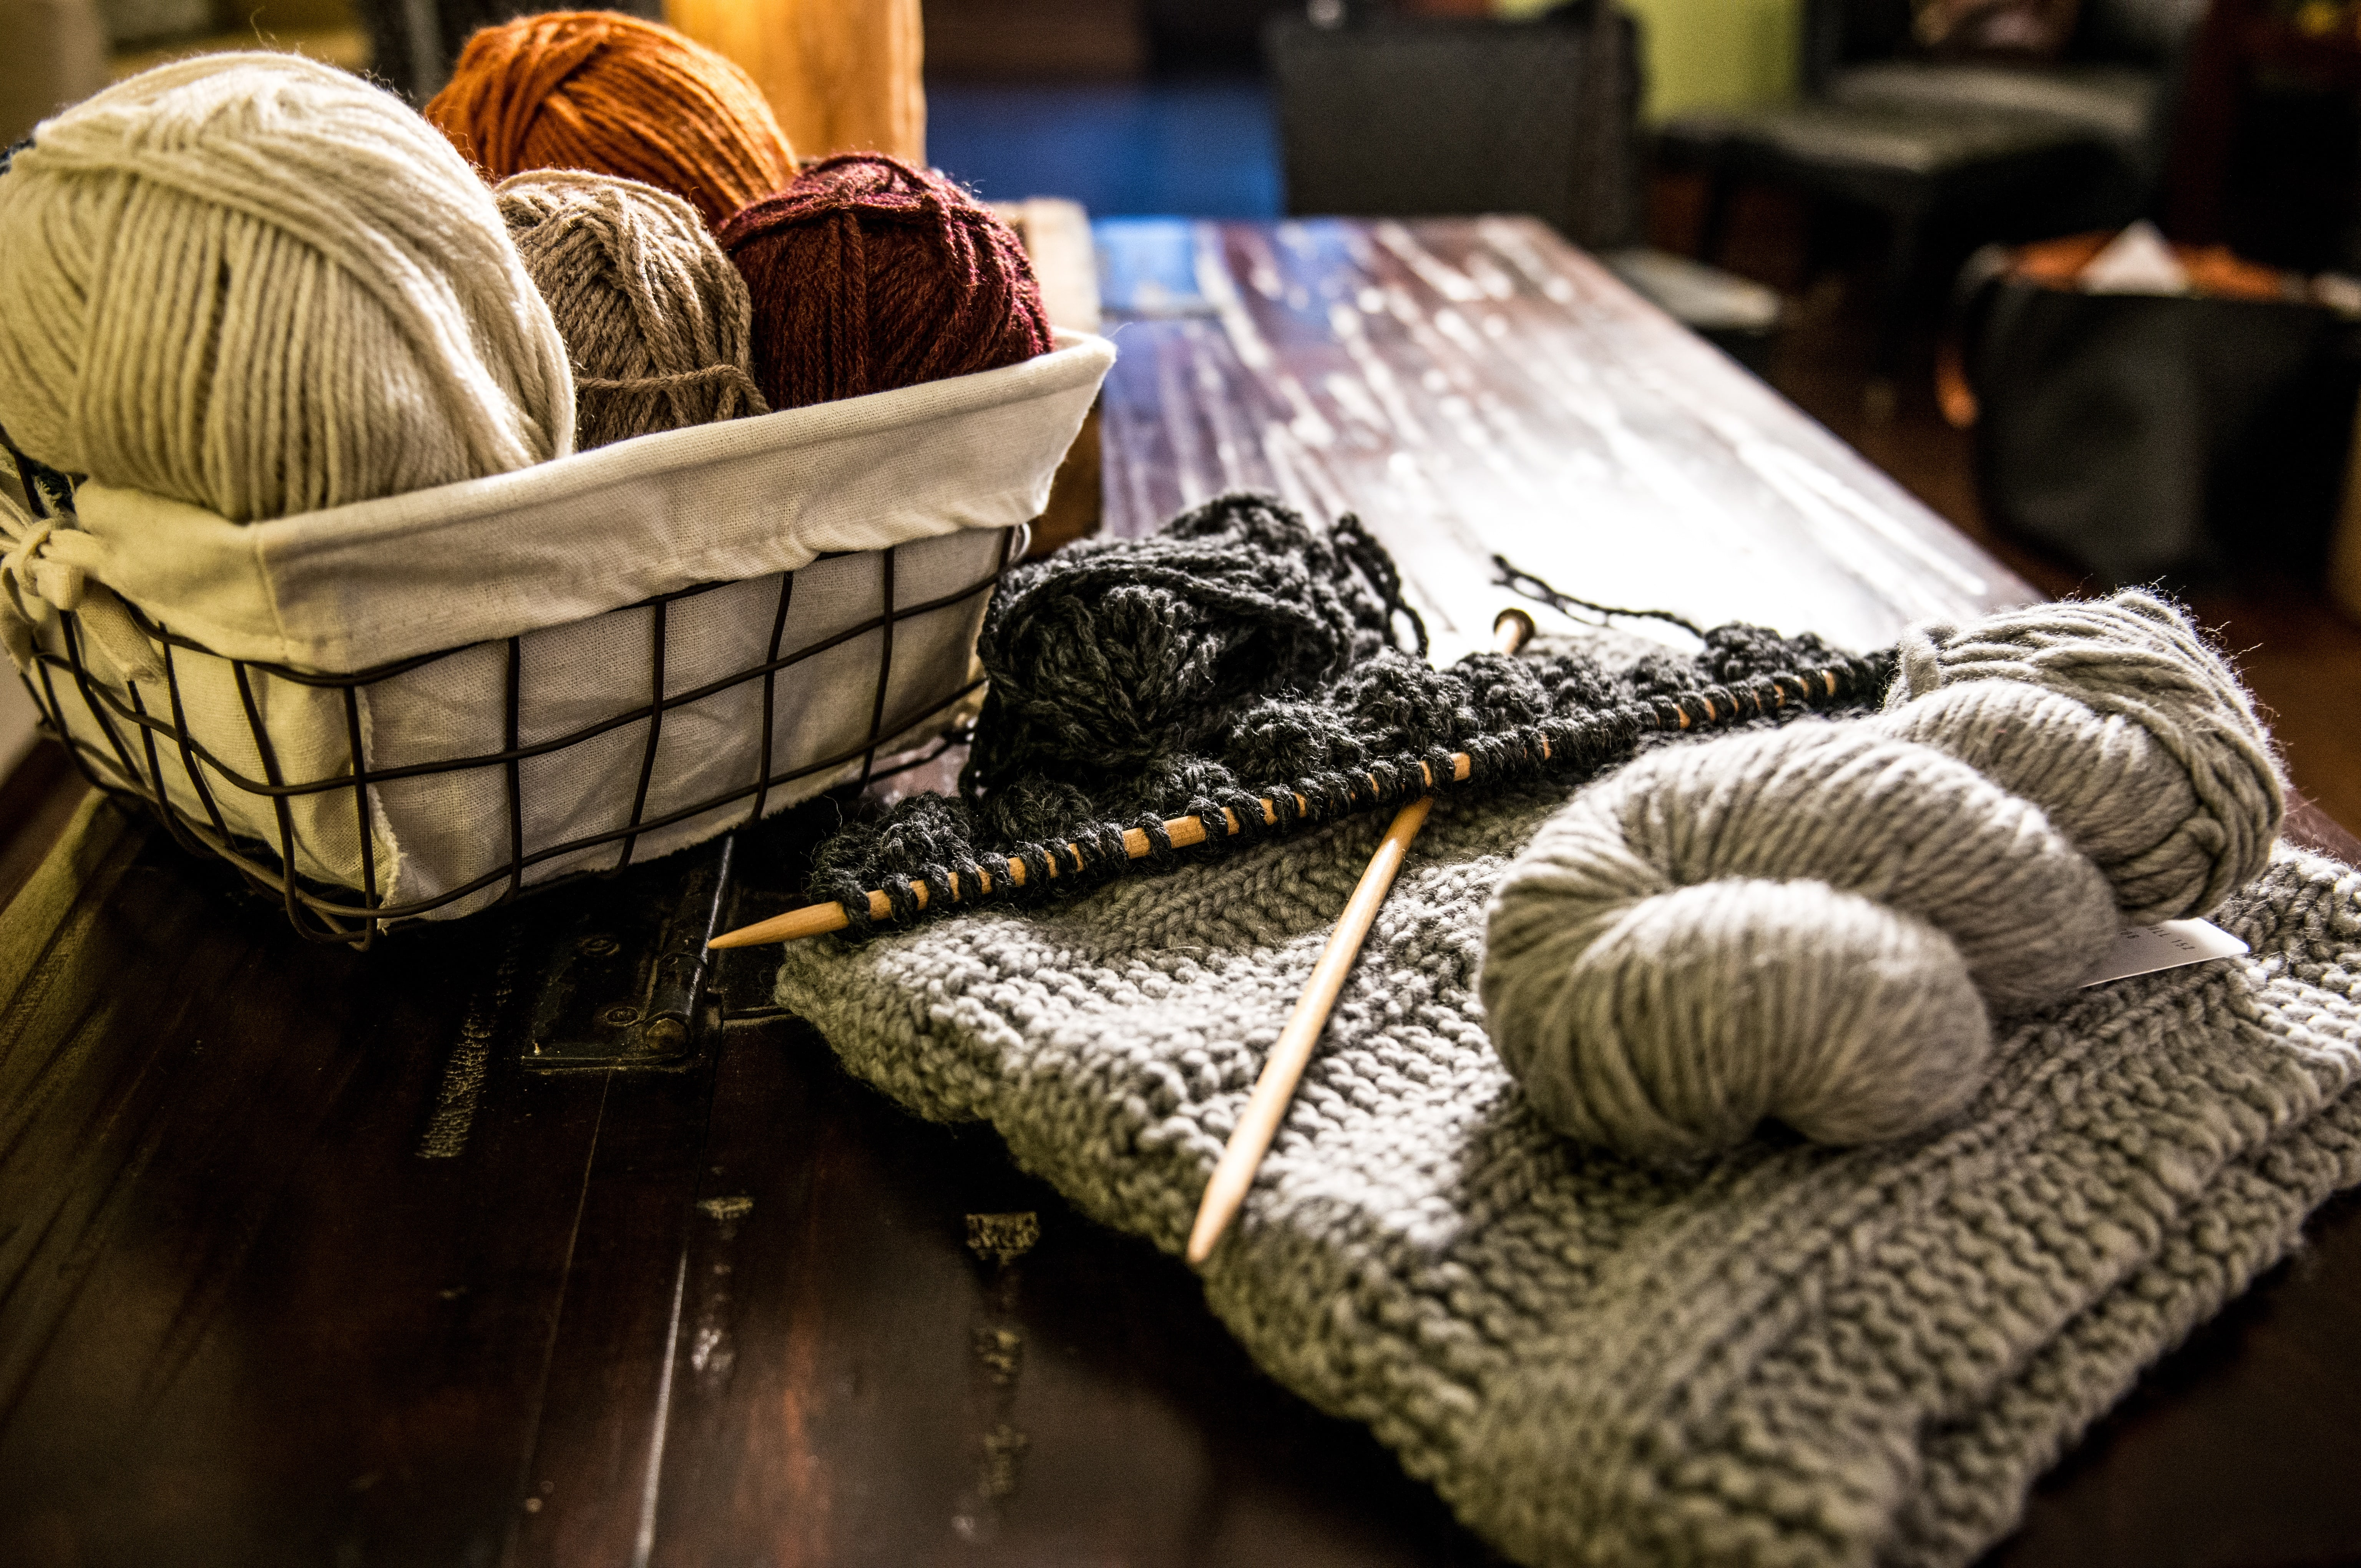 Basket of yarn to be used by a fiber artist